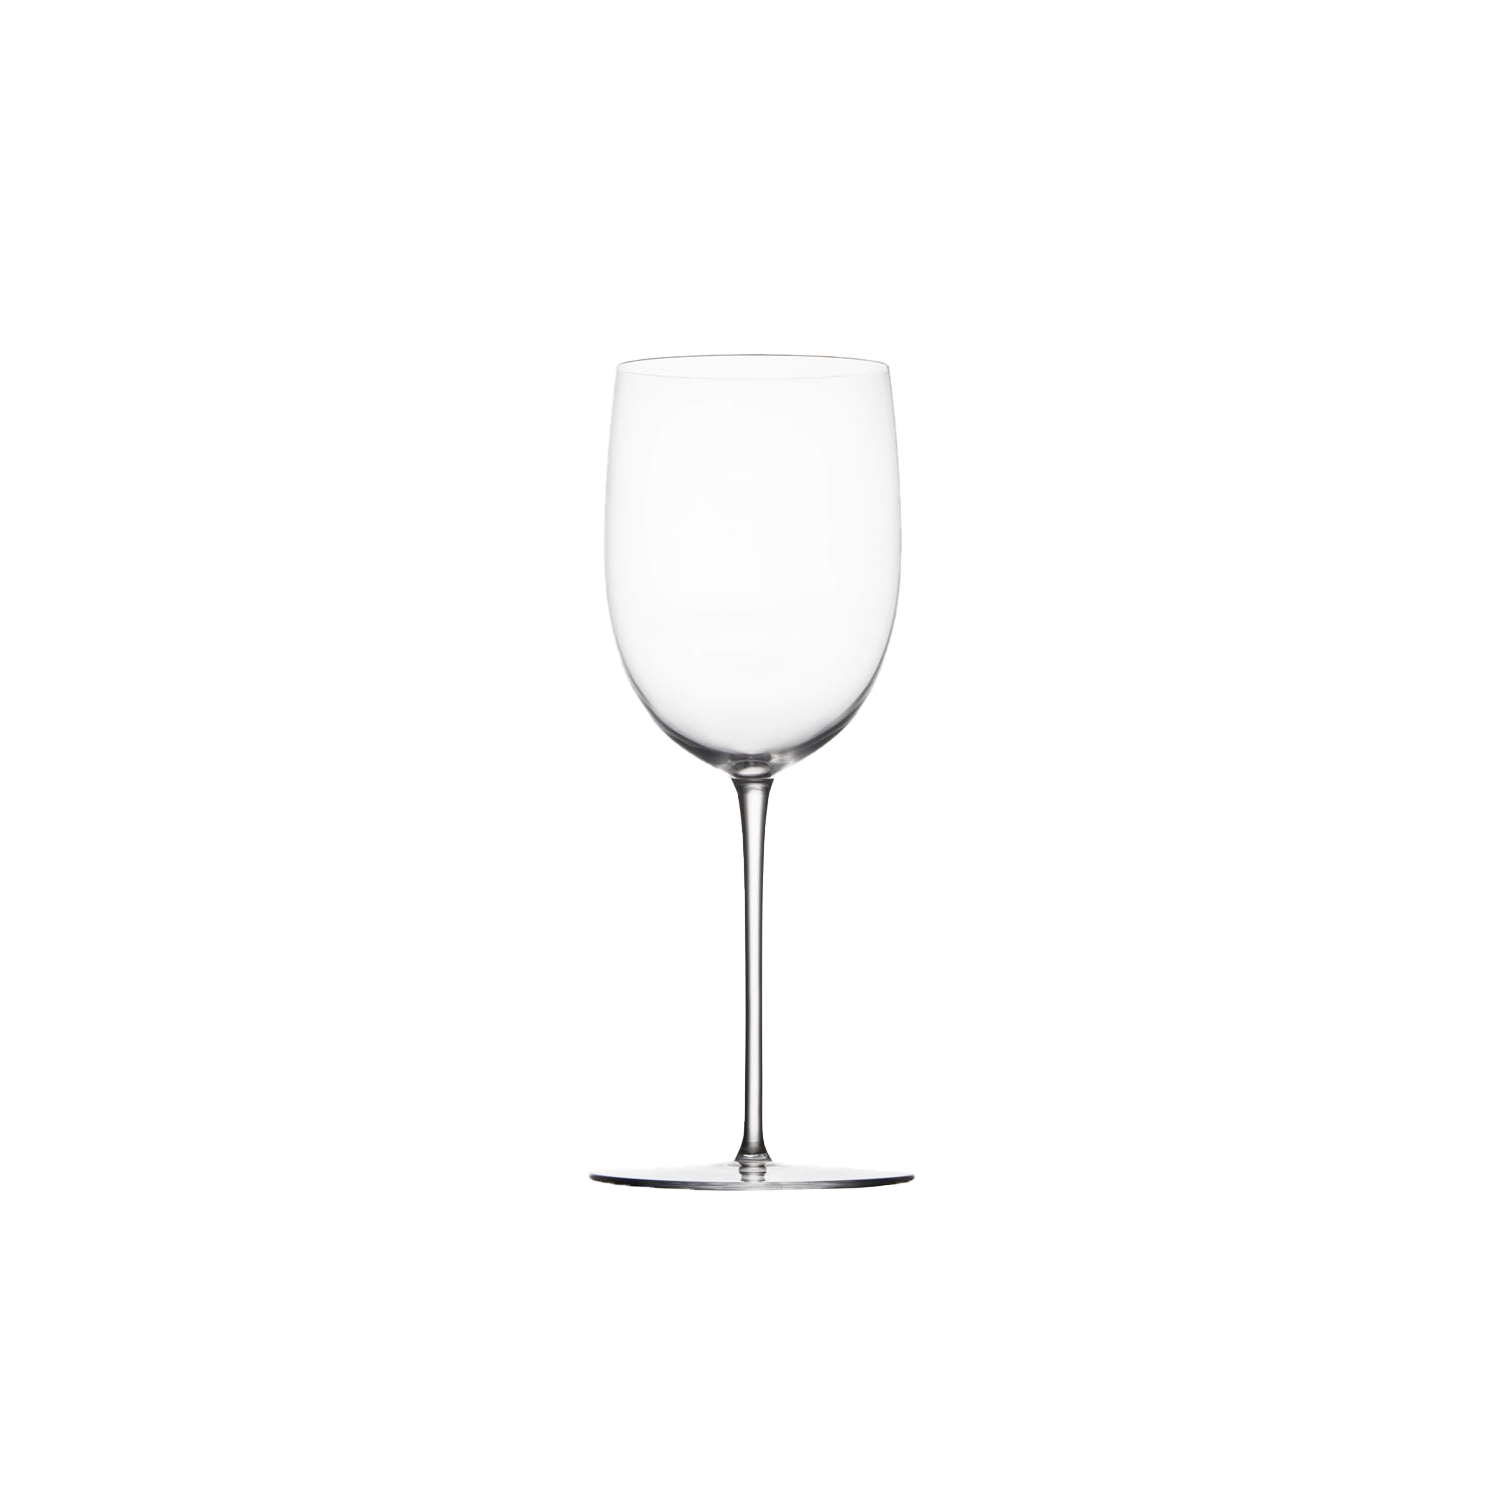 Drinking Set No.280 Wiener Gemischter Satz White Wine Glass - Set of 6 - POLKA a young and sucessful design studio from Austria wanted to create a simple Lobmeyr series to be used for personal everyday rituals. Each glass radiates elegance and grace of mouth-blown Lobmeyr crystal and each of the small series has its own story. So do the oenological correct wine glasses or the traditional champagne cup, standing for ebullient pleasure.   Matter of Stuff